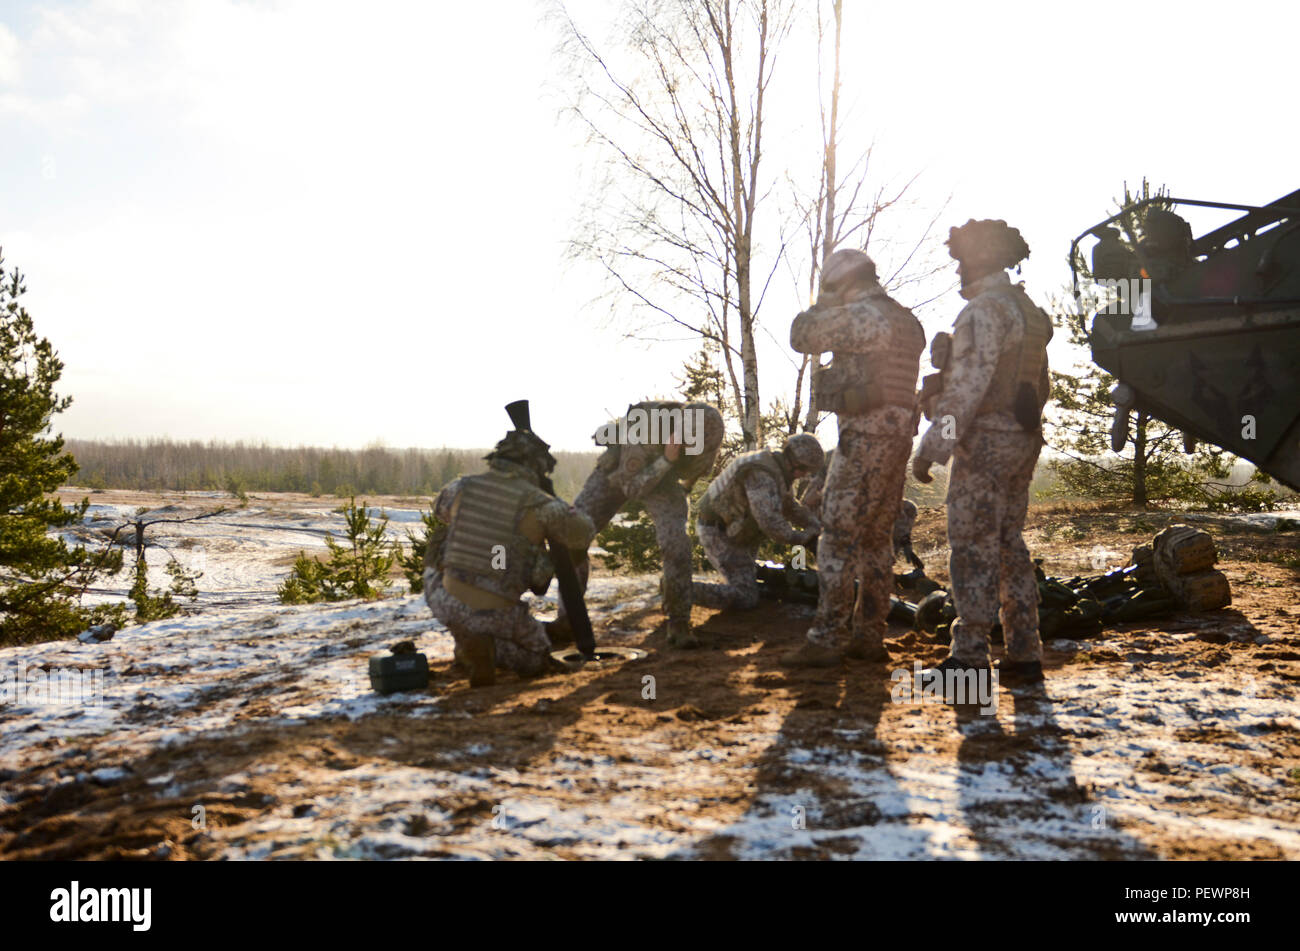 As the sun shines through the clouds, the Latvian mortar soldiers prepare themselves for the firing of an 81 mm mortar round during a joint field training exercise at Adazi Training Area in Latvia, Feb. 4, 2016. (Photo by U.S. Army Staff Sgt. Steven M. Colvin/Released) - Stock Image